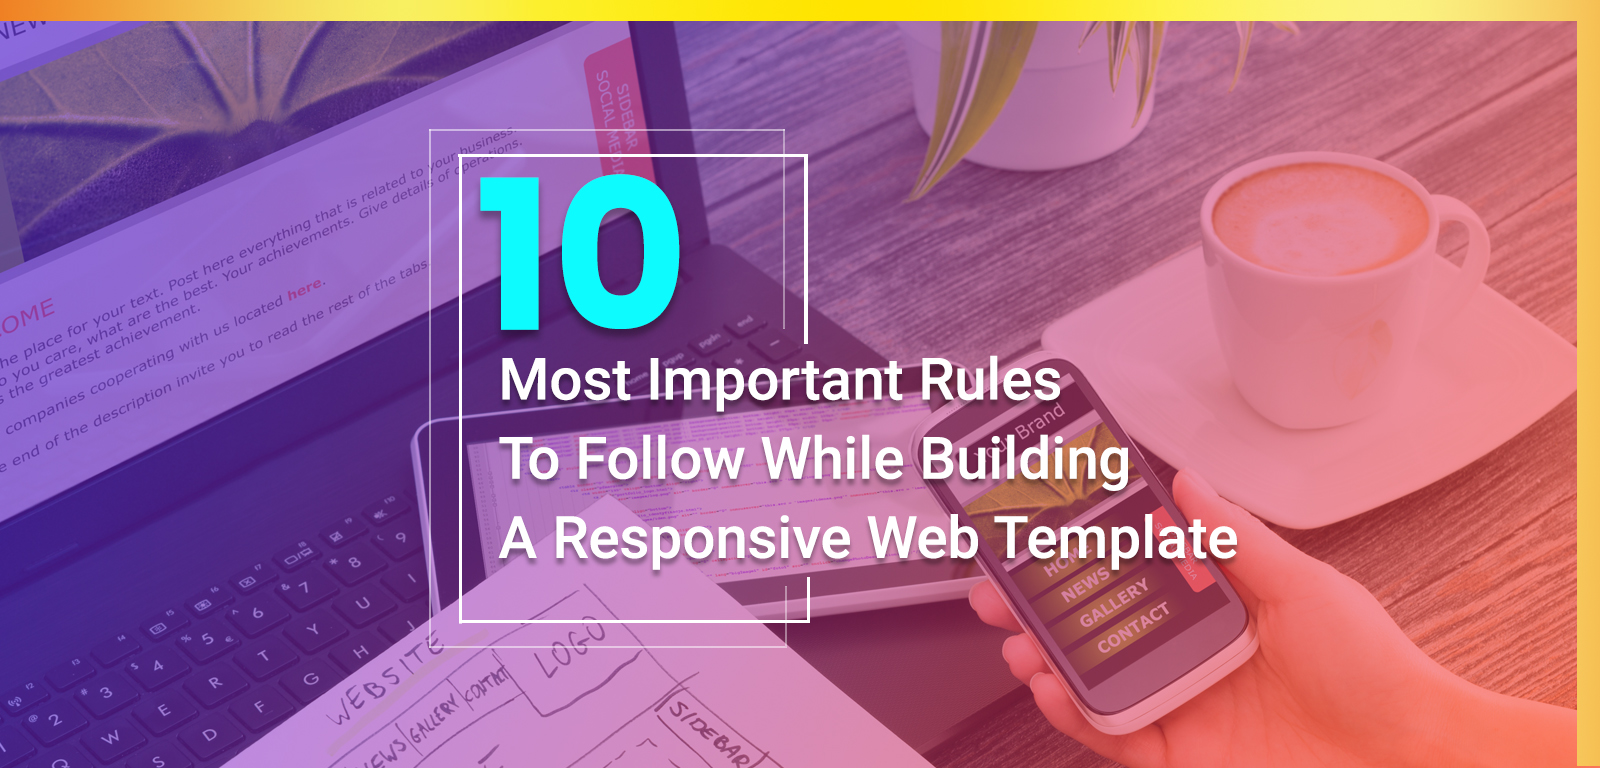 10 Most important rules to follow while building a Responsive Web Template